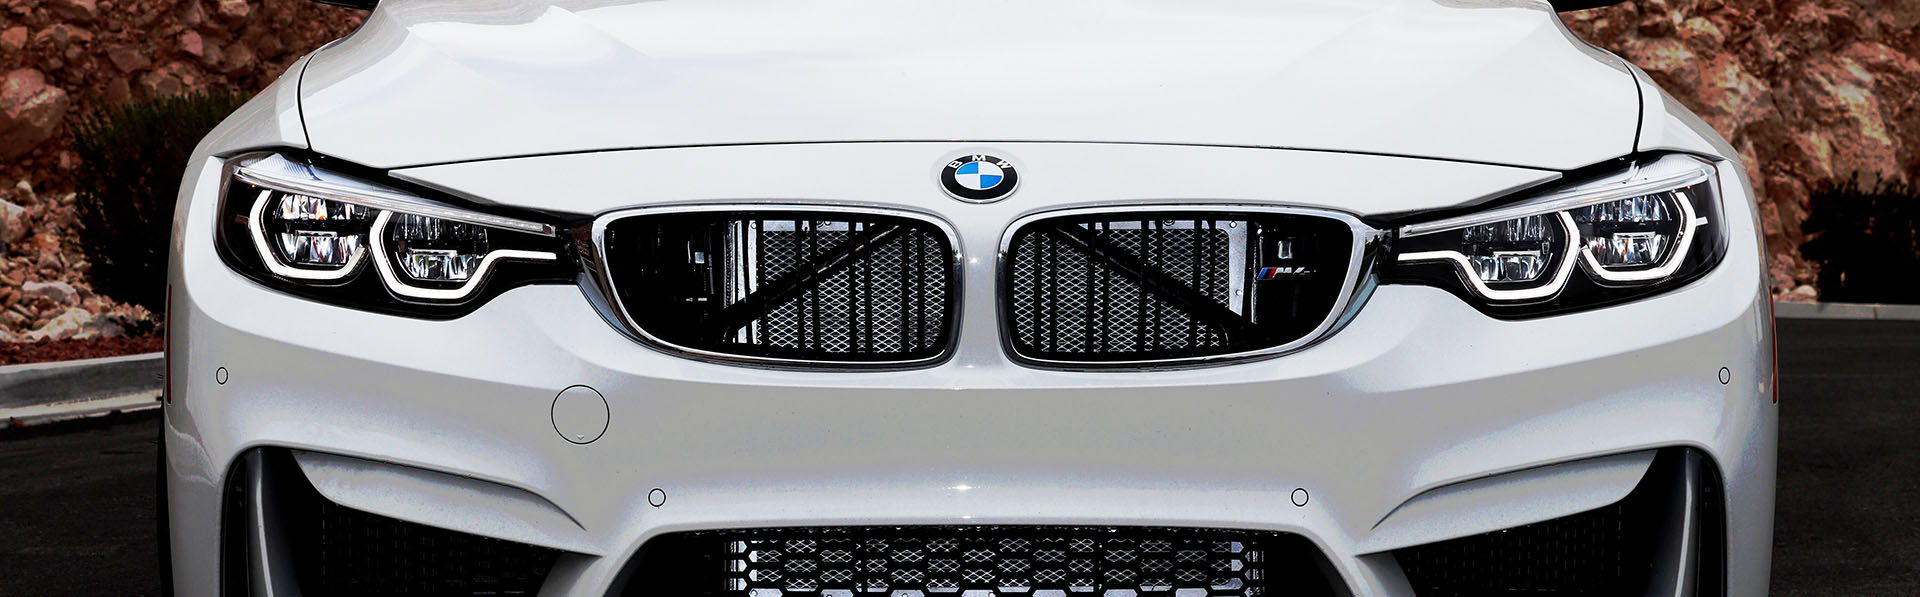 Lowest Price On Bmw Performance Parts Intakes Tunes Exhausts Downpipes And Intercoolers